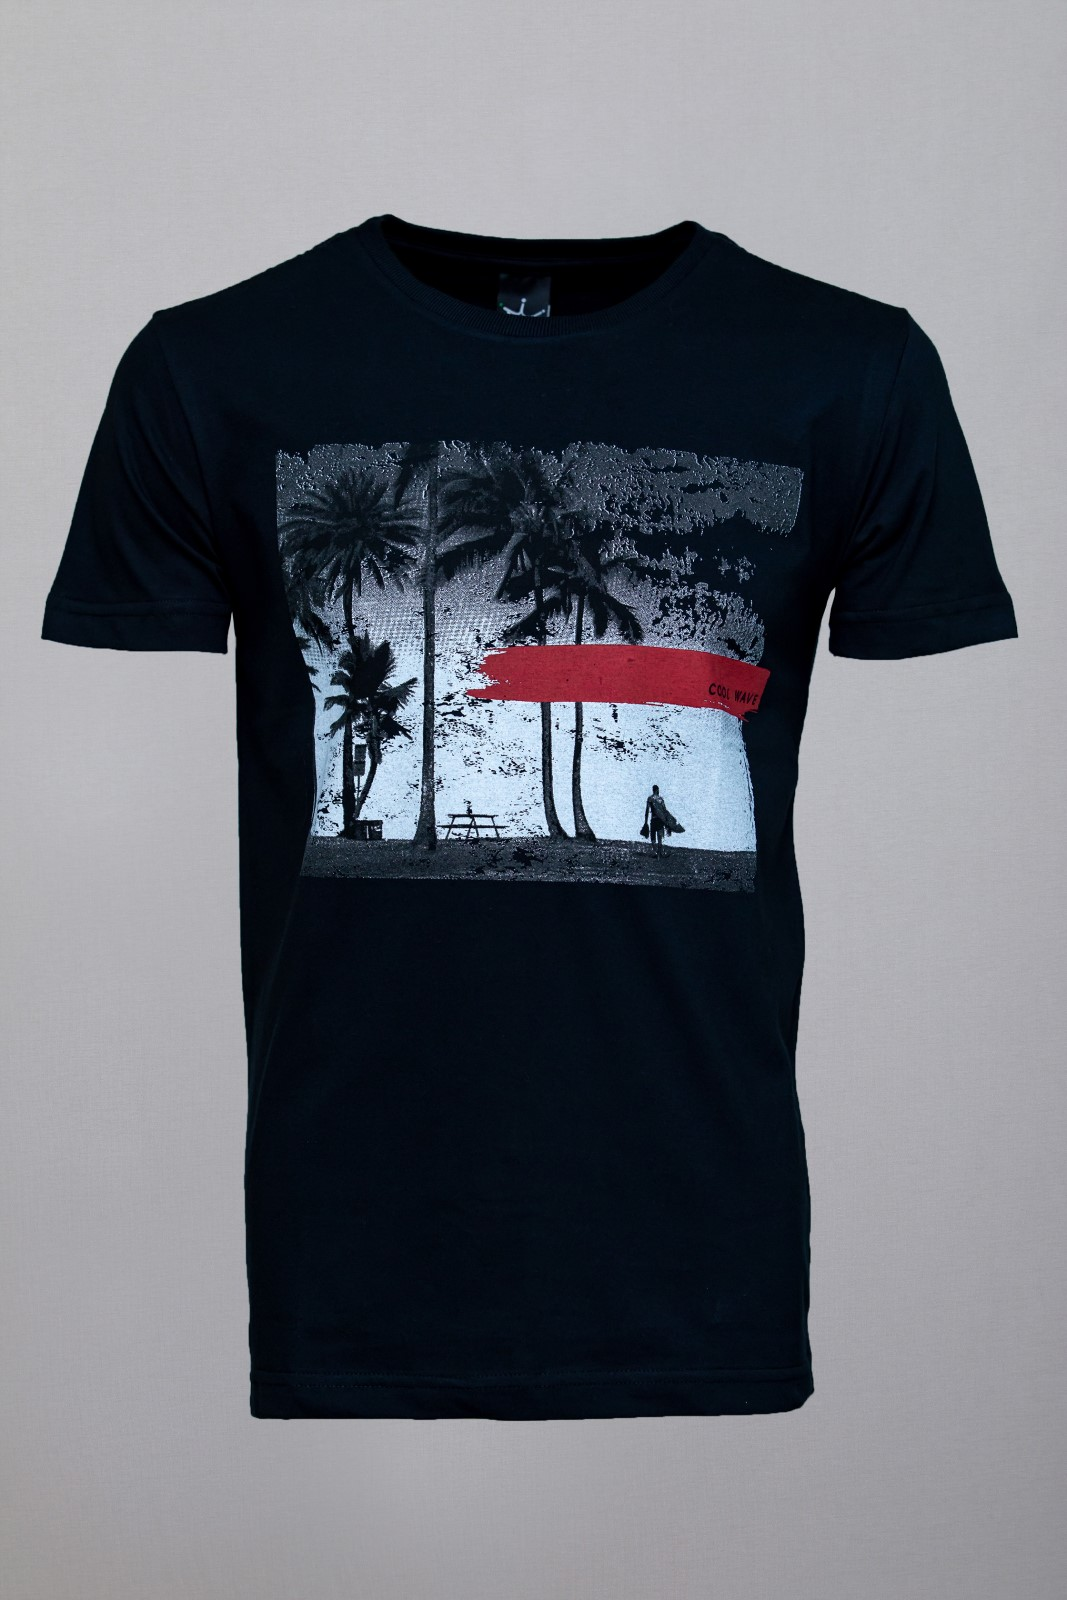 Camiseta CoolWave Looking For Waves